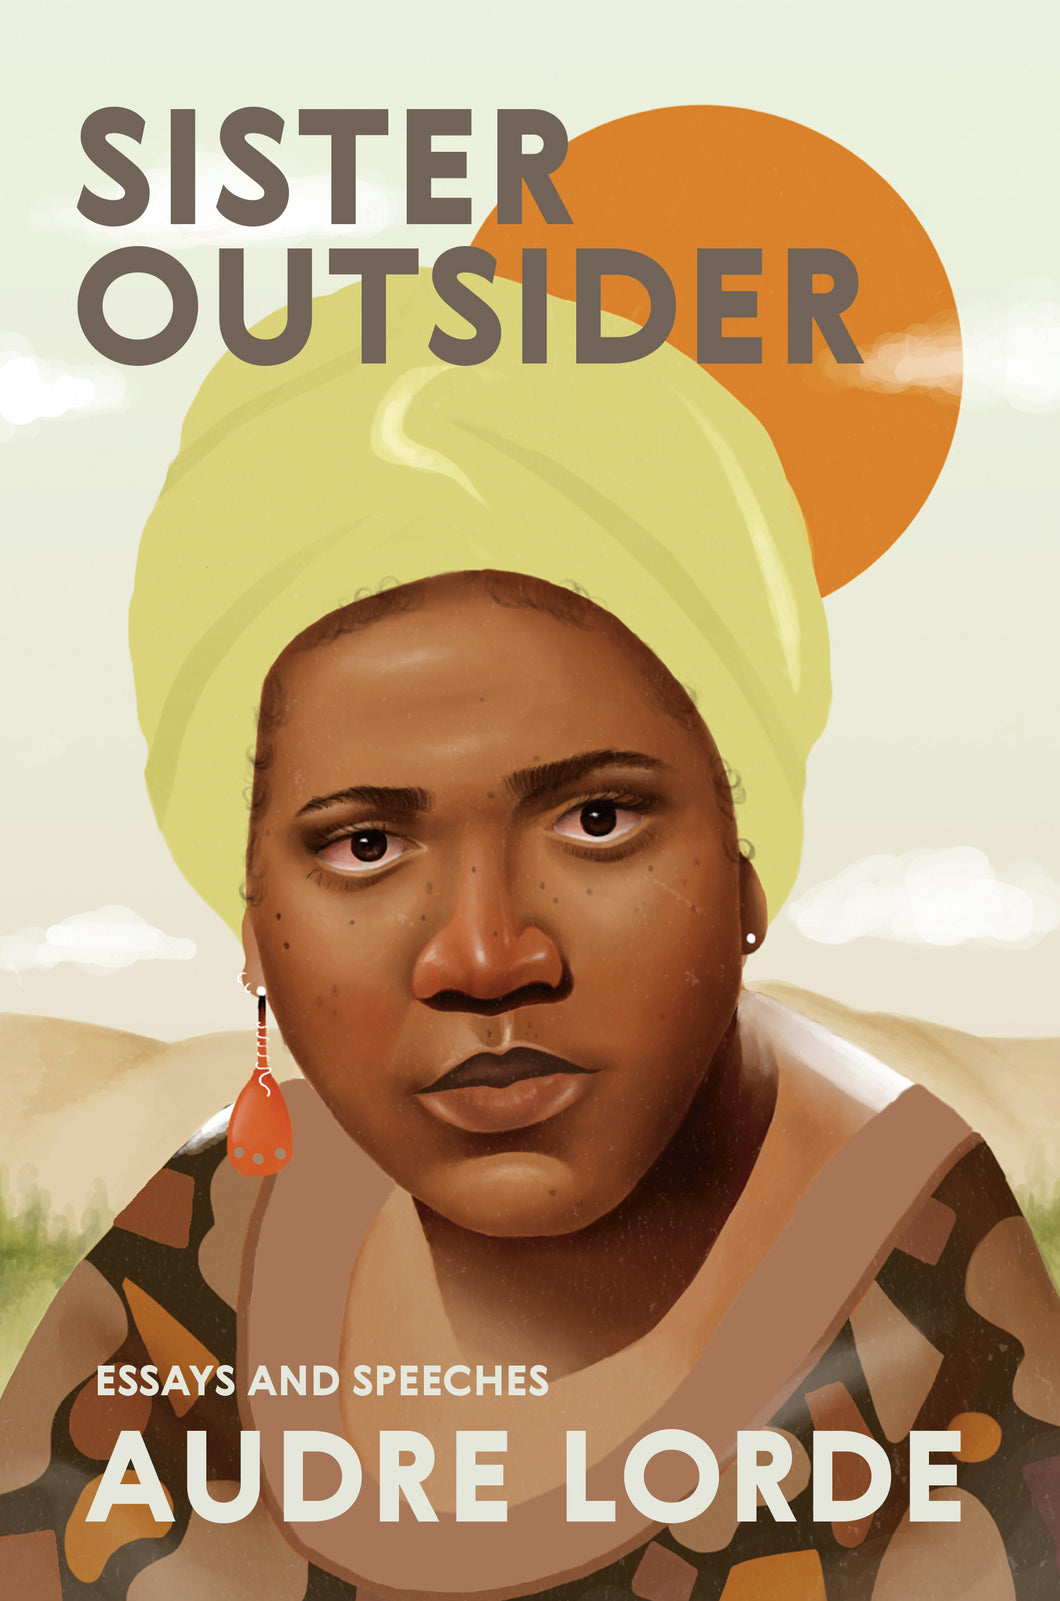 Sister Outsider: Essays & Speeches by Audre Lorde